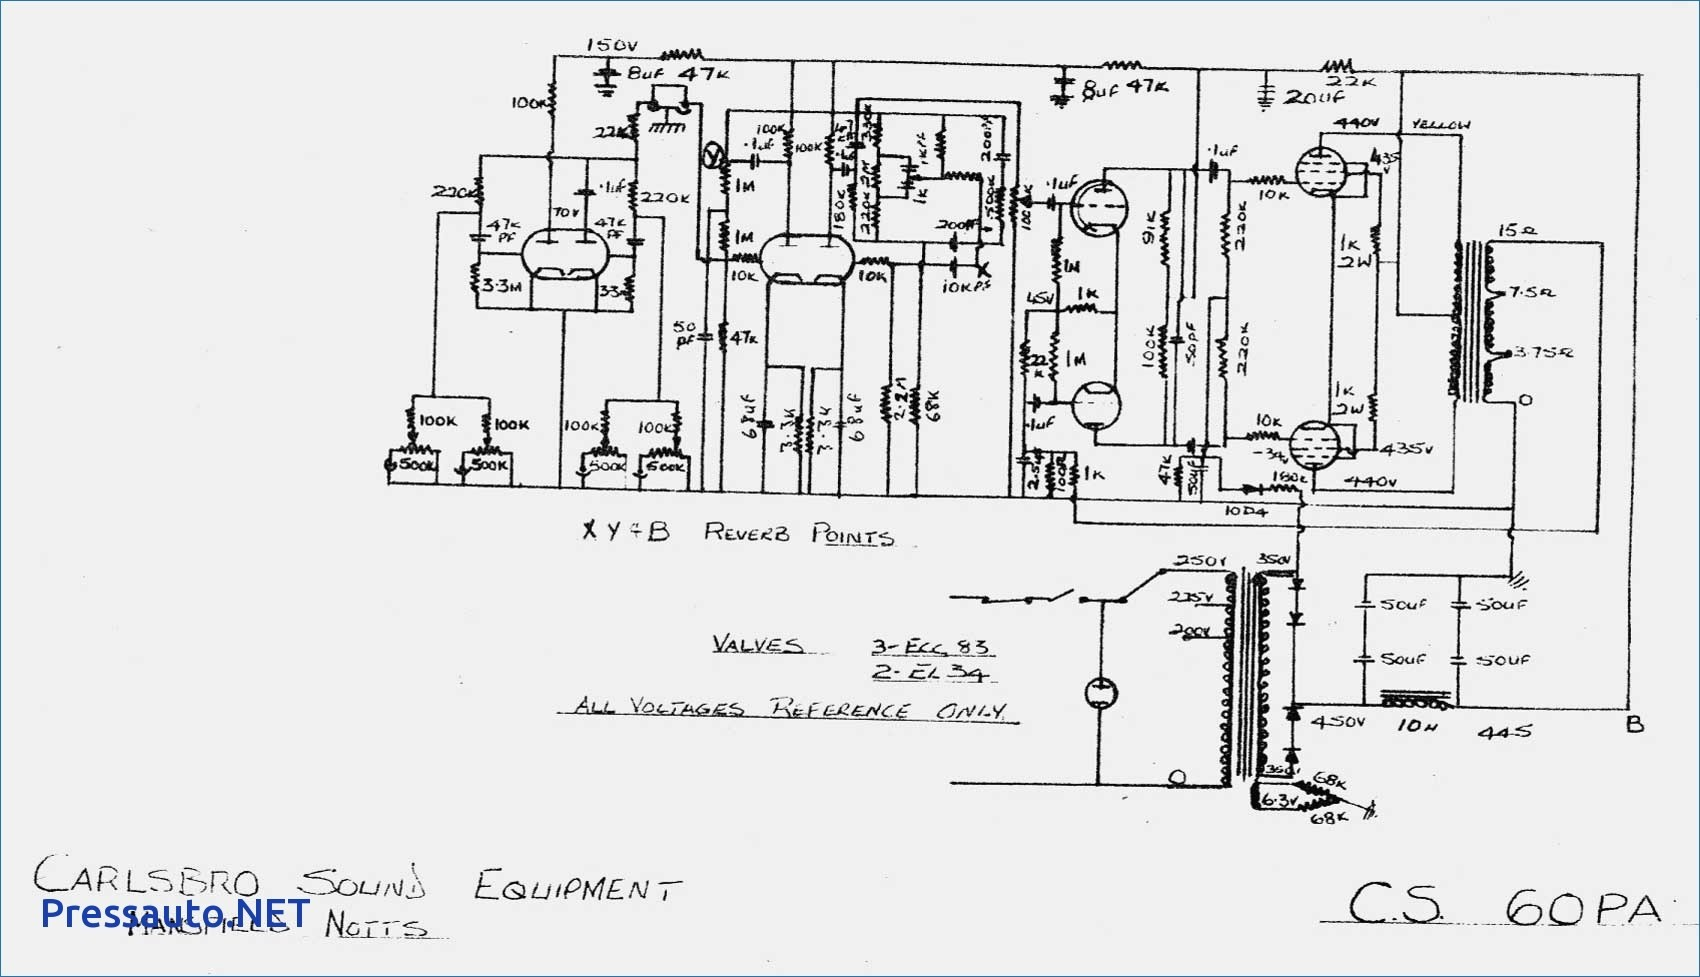 cub cadet 2166 ignition switch wiring diagram